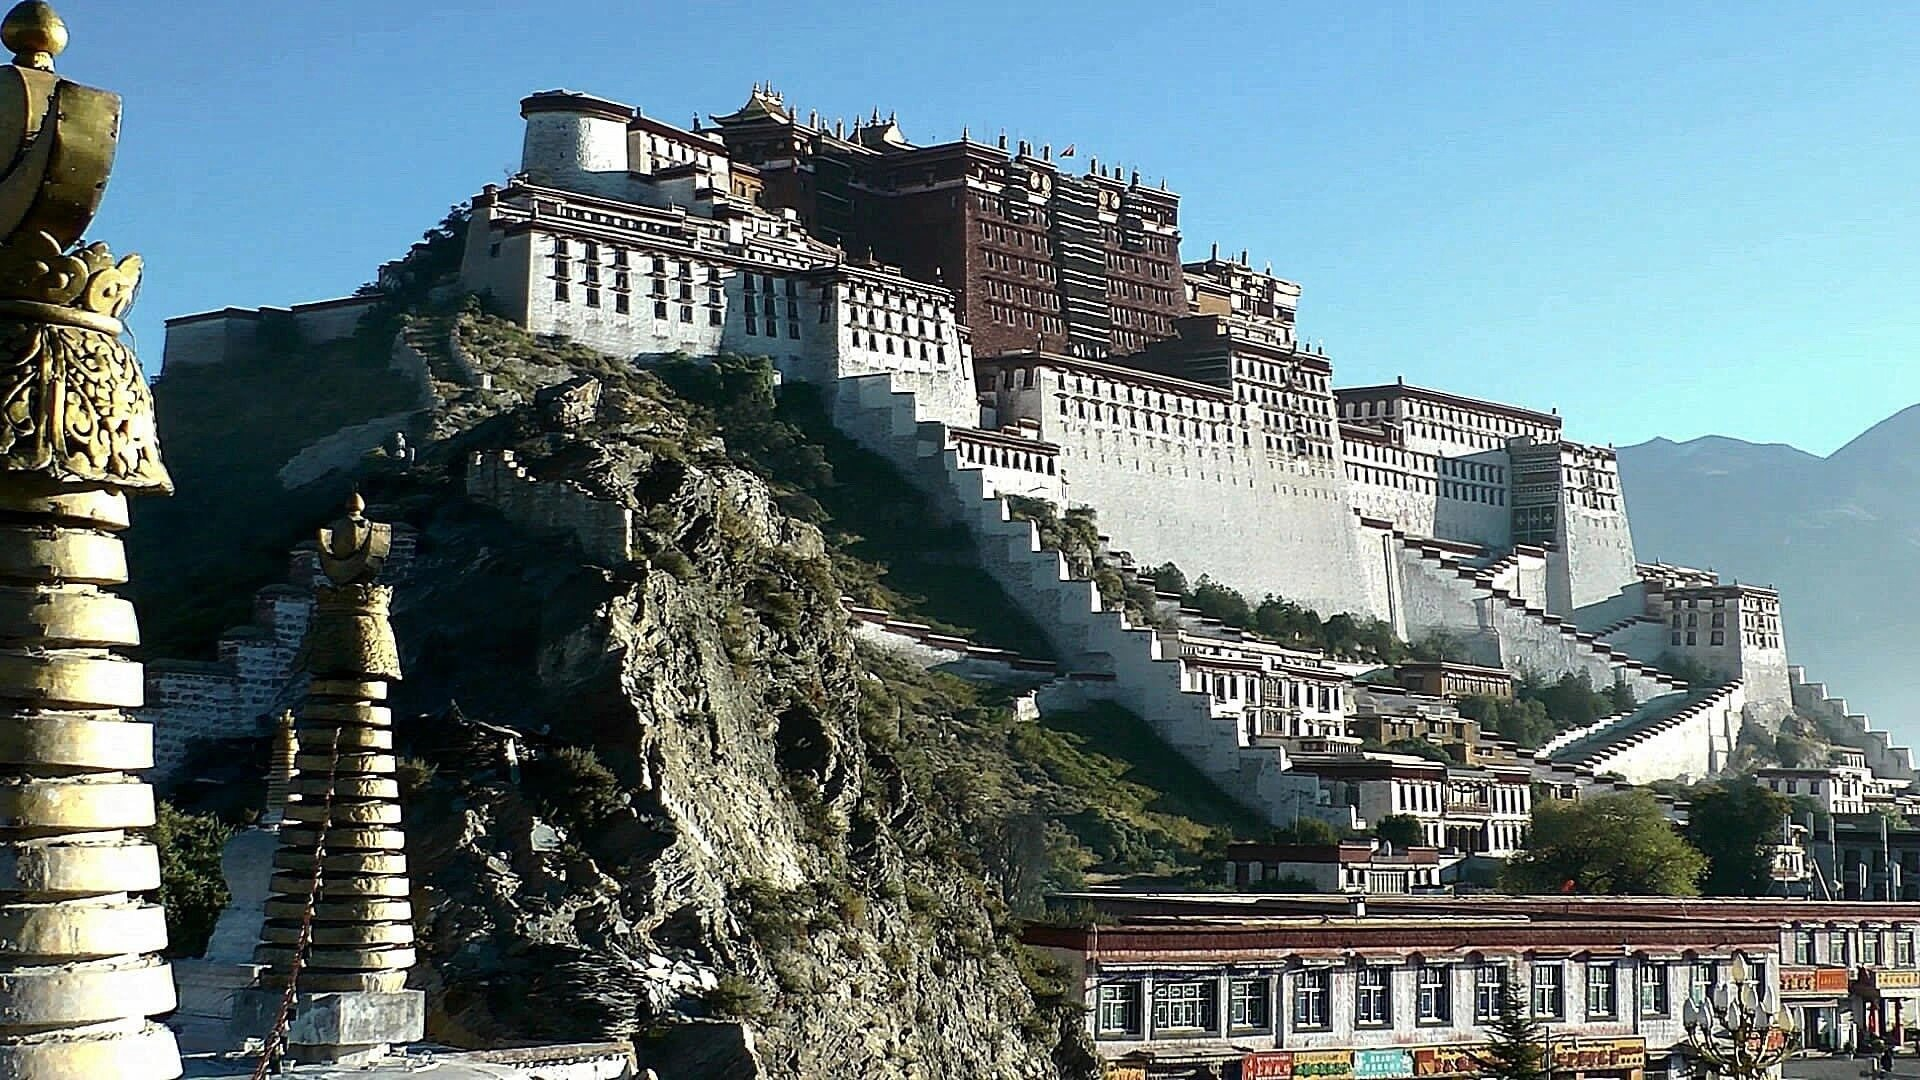 4k Wallpaper 3d National Geographic Adventure Tour To The Center Of Tibet Lhasa A Sacred Land